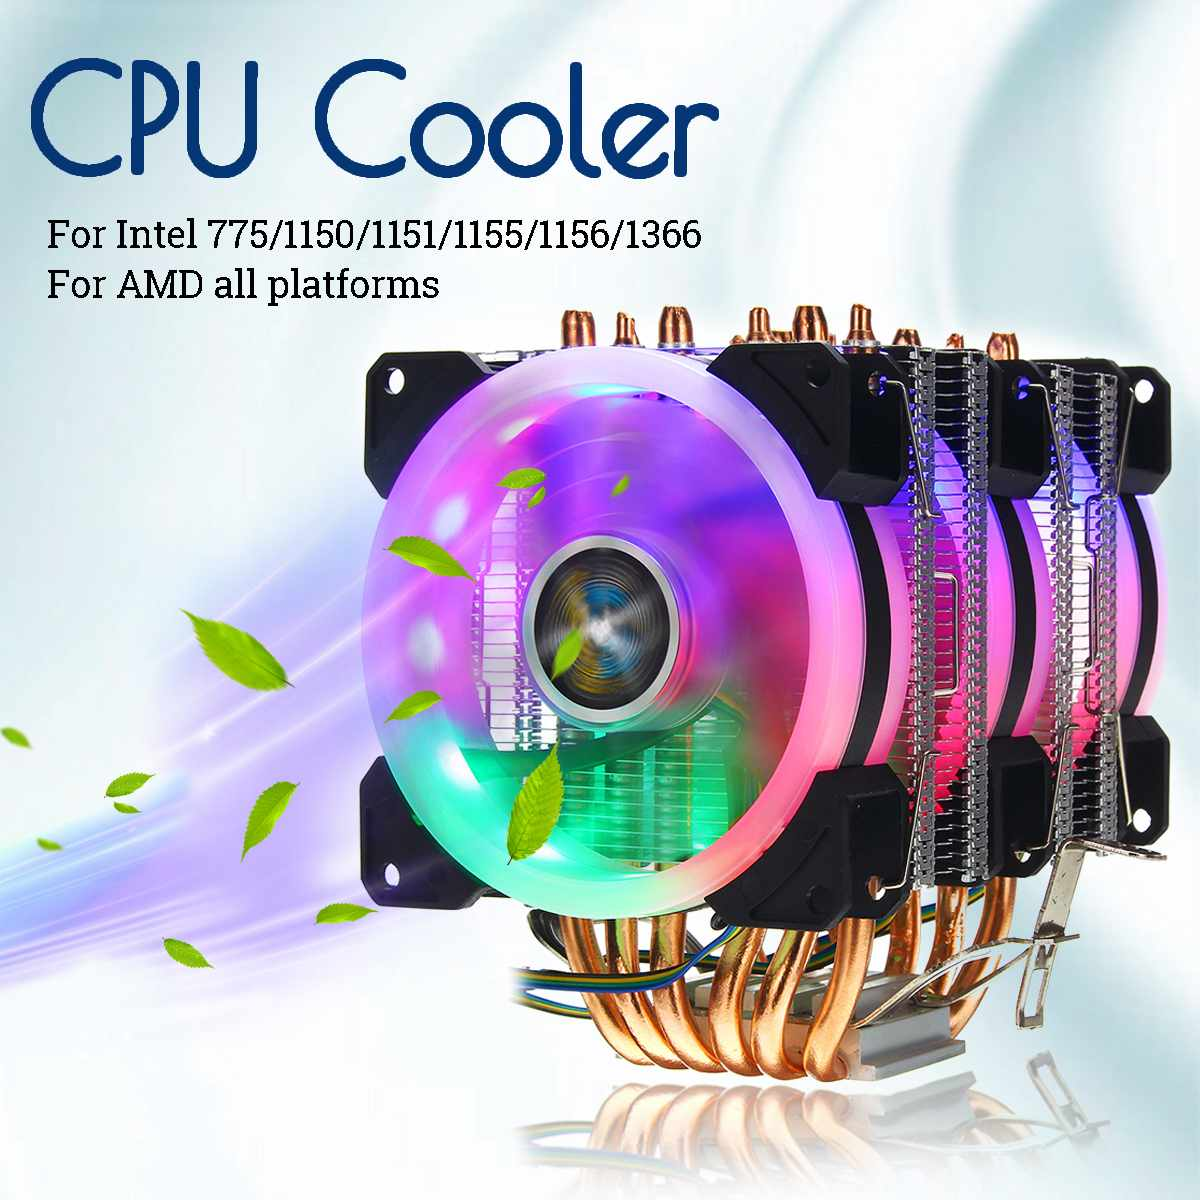 6 Heatpipe CPU Cooler RGB LED Fan Quiet 4pin CPU Fan Cooling Heatsink CPU Cooling for Intel 775/1150/1151/1155/1156/1366 for AMD6 Heatpipe CPU Cooler RGB LED Fan Quiet 4pin CPU Fan Cooling Heatsink CPU Cooling for Intel 775/1150/1151/1155/1156/1366 for AMD